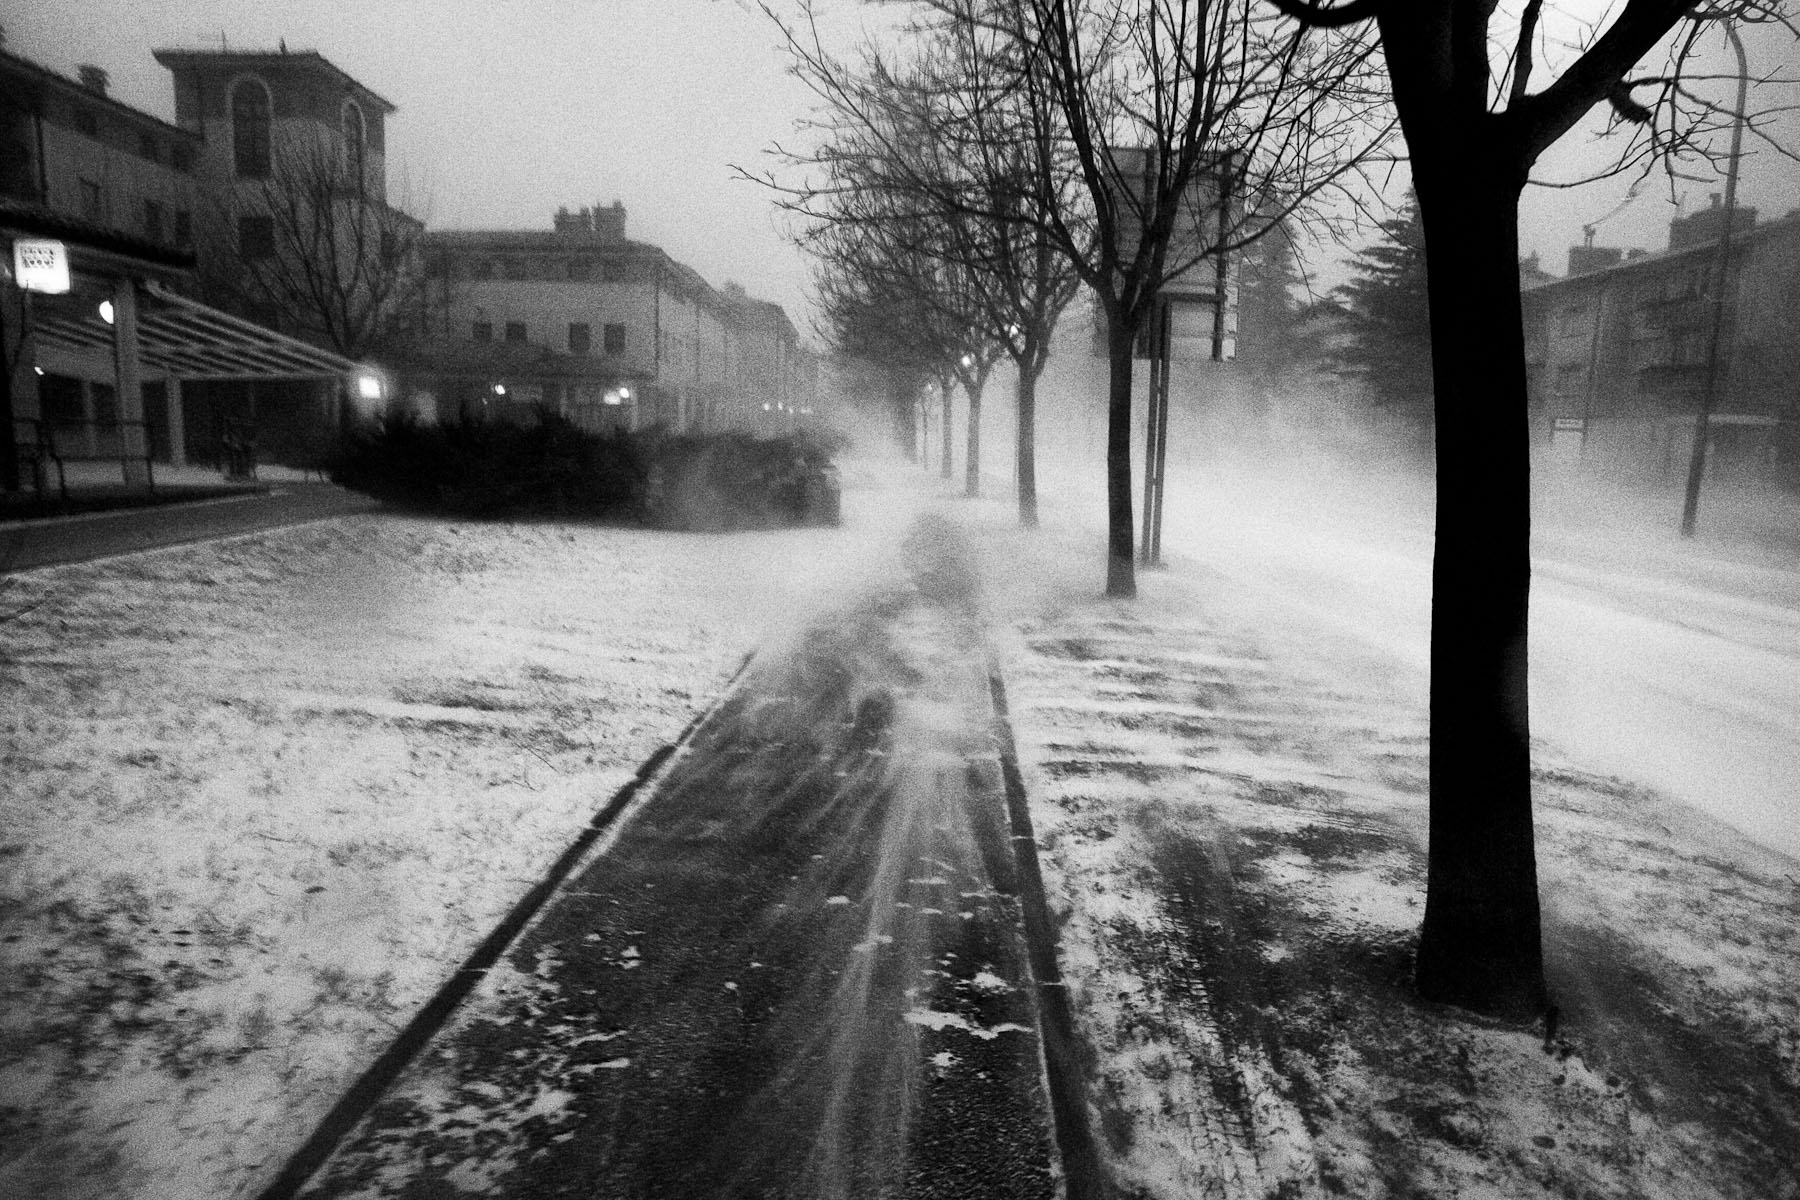 Extreme Bora winds blow through empty streets of Ajdovscina, Slovenia, March 10, 2010.